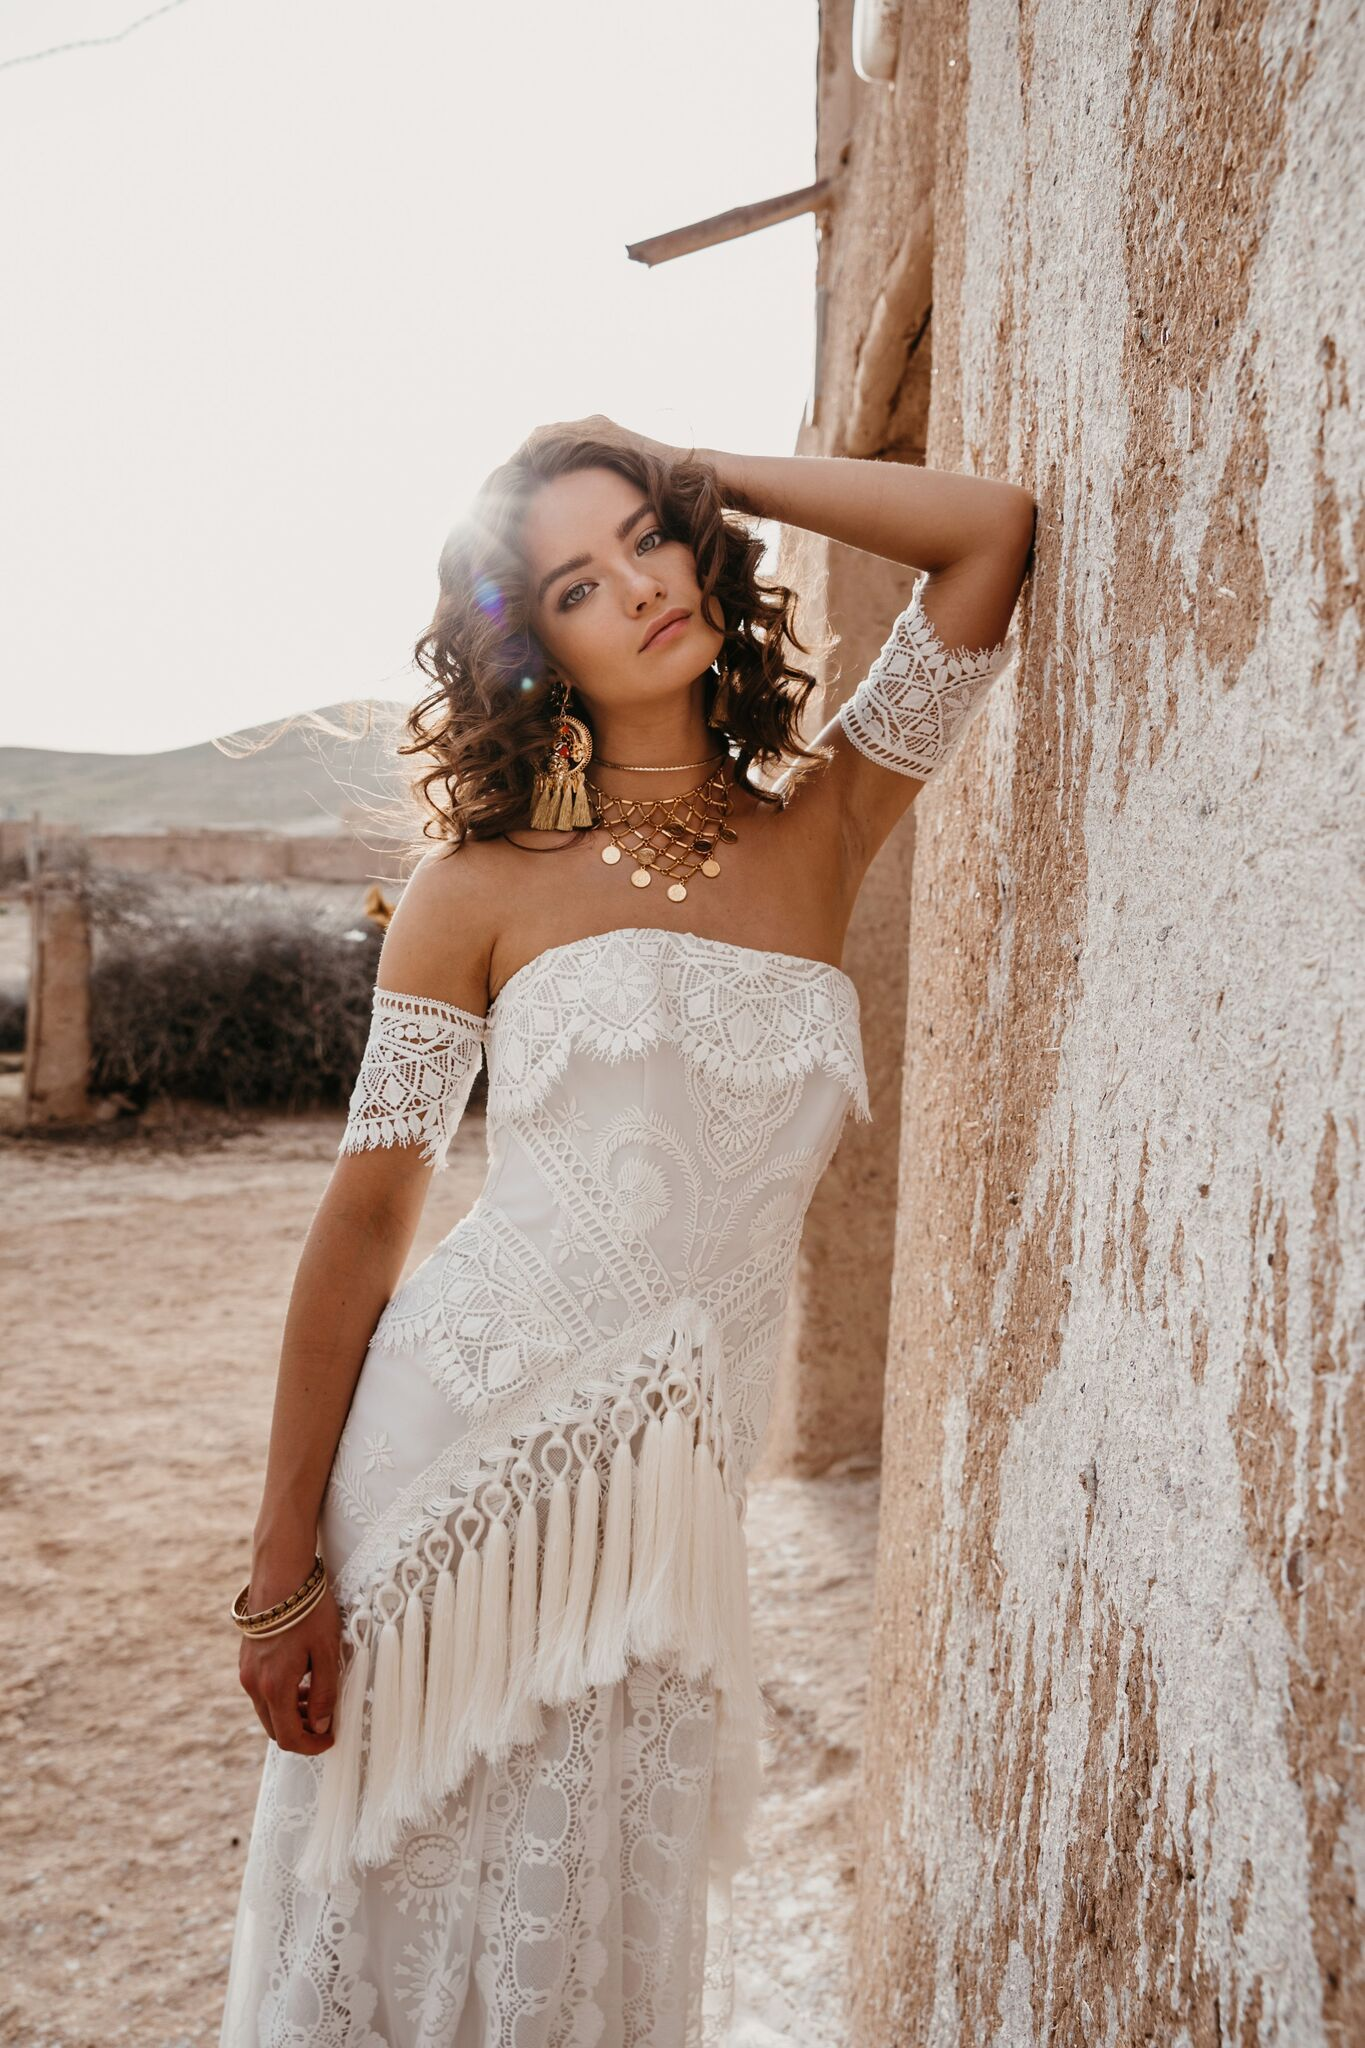 Strapless fitted lace wedding dresses  New Rue De Seine Wedding Dresses  Trunk Shows  rue de seine bridal